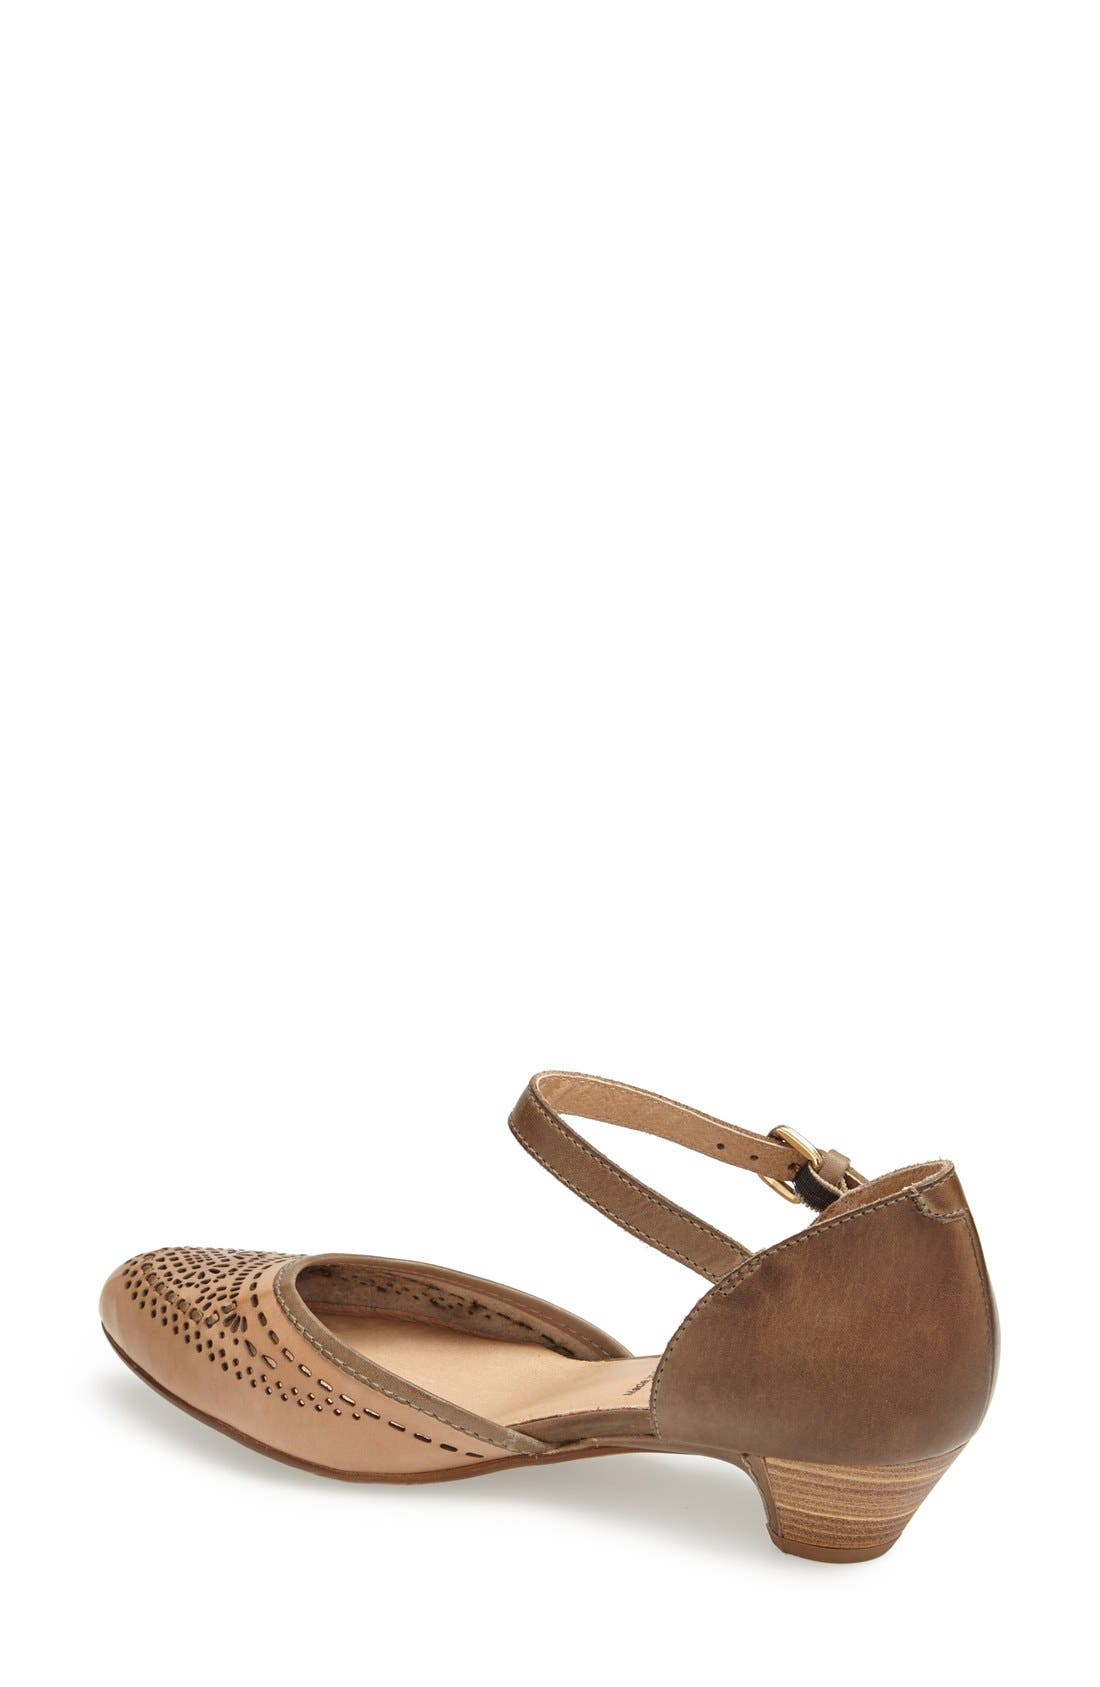 'Elba' Perforated Leather Ankle Strap Sandal,                             Alternate thumbnail 4, color,